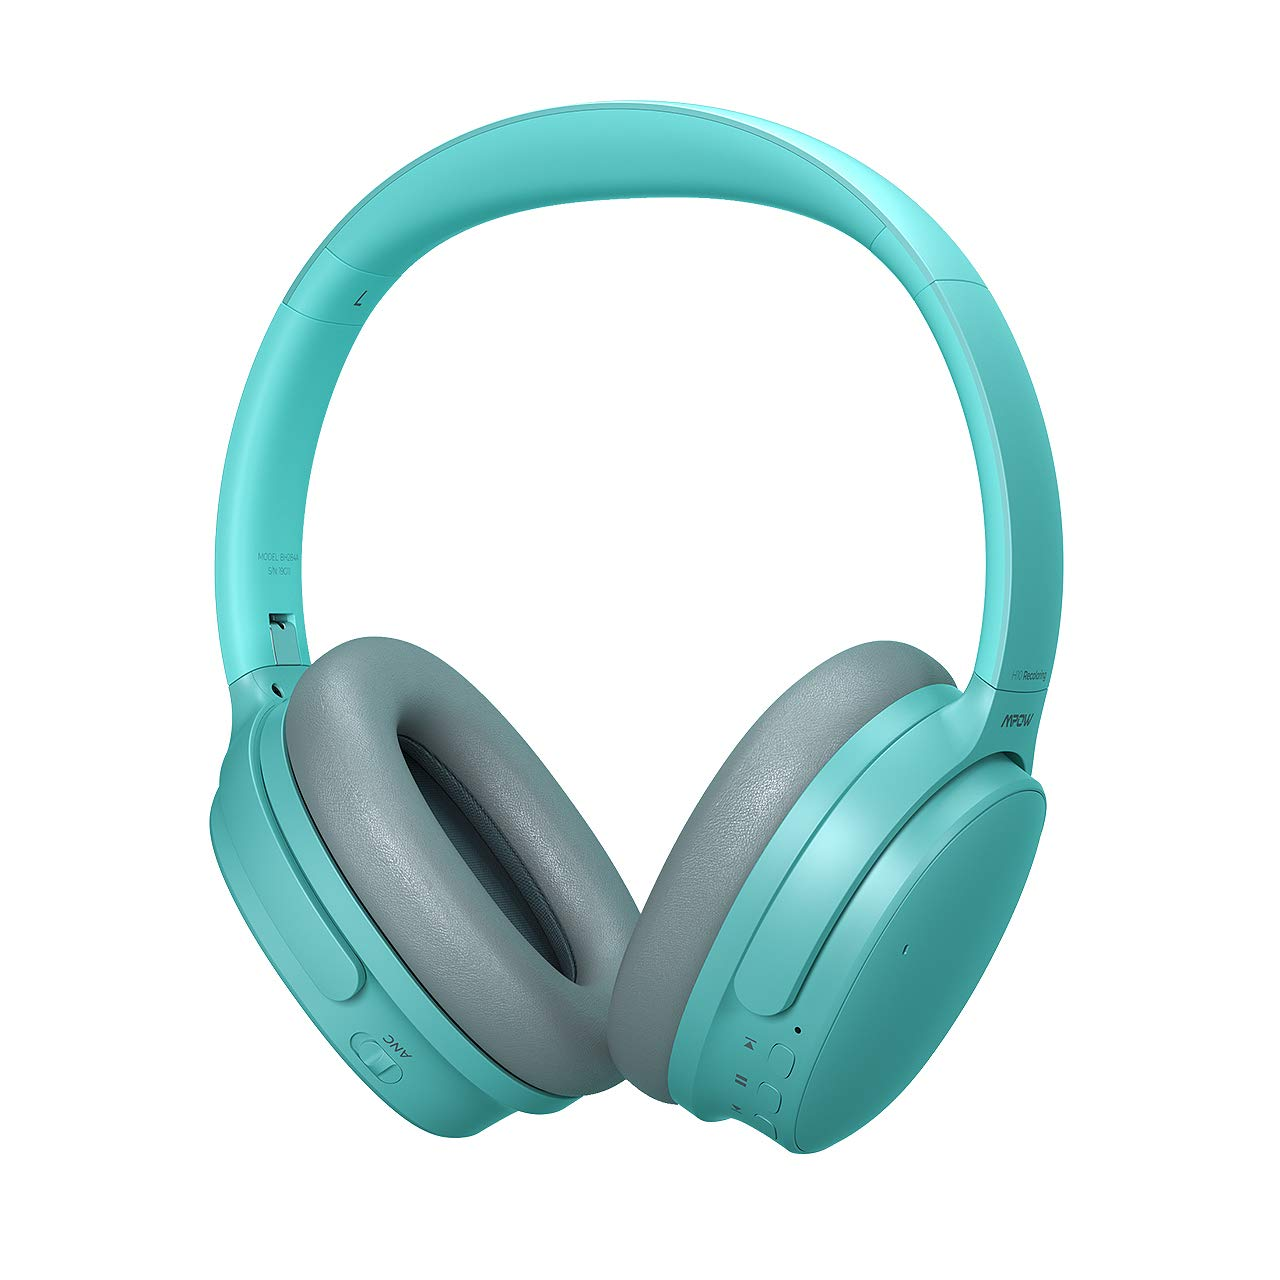 Mpow H10 Dual-Mic Noise Cancelling Bluetooth Headphones, [2019 Edition] ANC Over-Ear Wireless Headphones with CVC 6.0 Microphone, Hi-Fi Deep Bass, 30hrs Playtime, Green